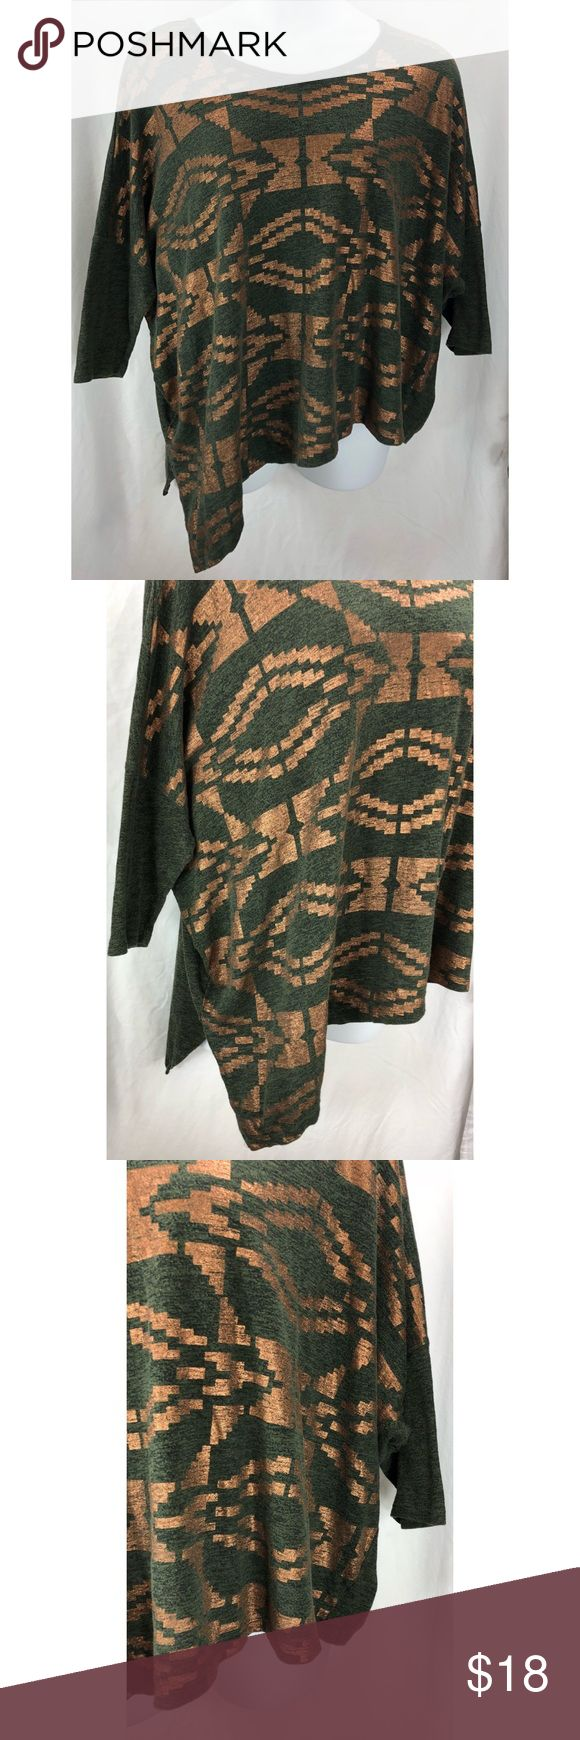 Lane Bryant Shirt batwing/dolman Metallic 5251 Lane Bryant Shirt batwing/dolman Aztec Metallic Print Asymmetrical Women's Size:  18/20 Approx measurement: armpit to armpit - 37 1/4 inches; length - 23-28 inches Fabric content: 55% cotton, 45% polyester Machine washable Gently used - see pictures Lane Bryant Tops